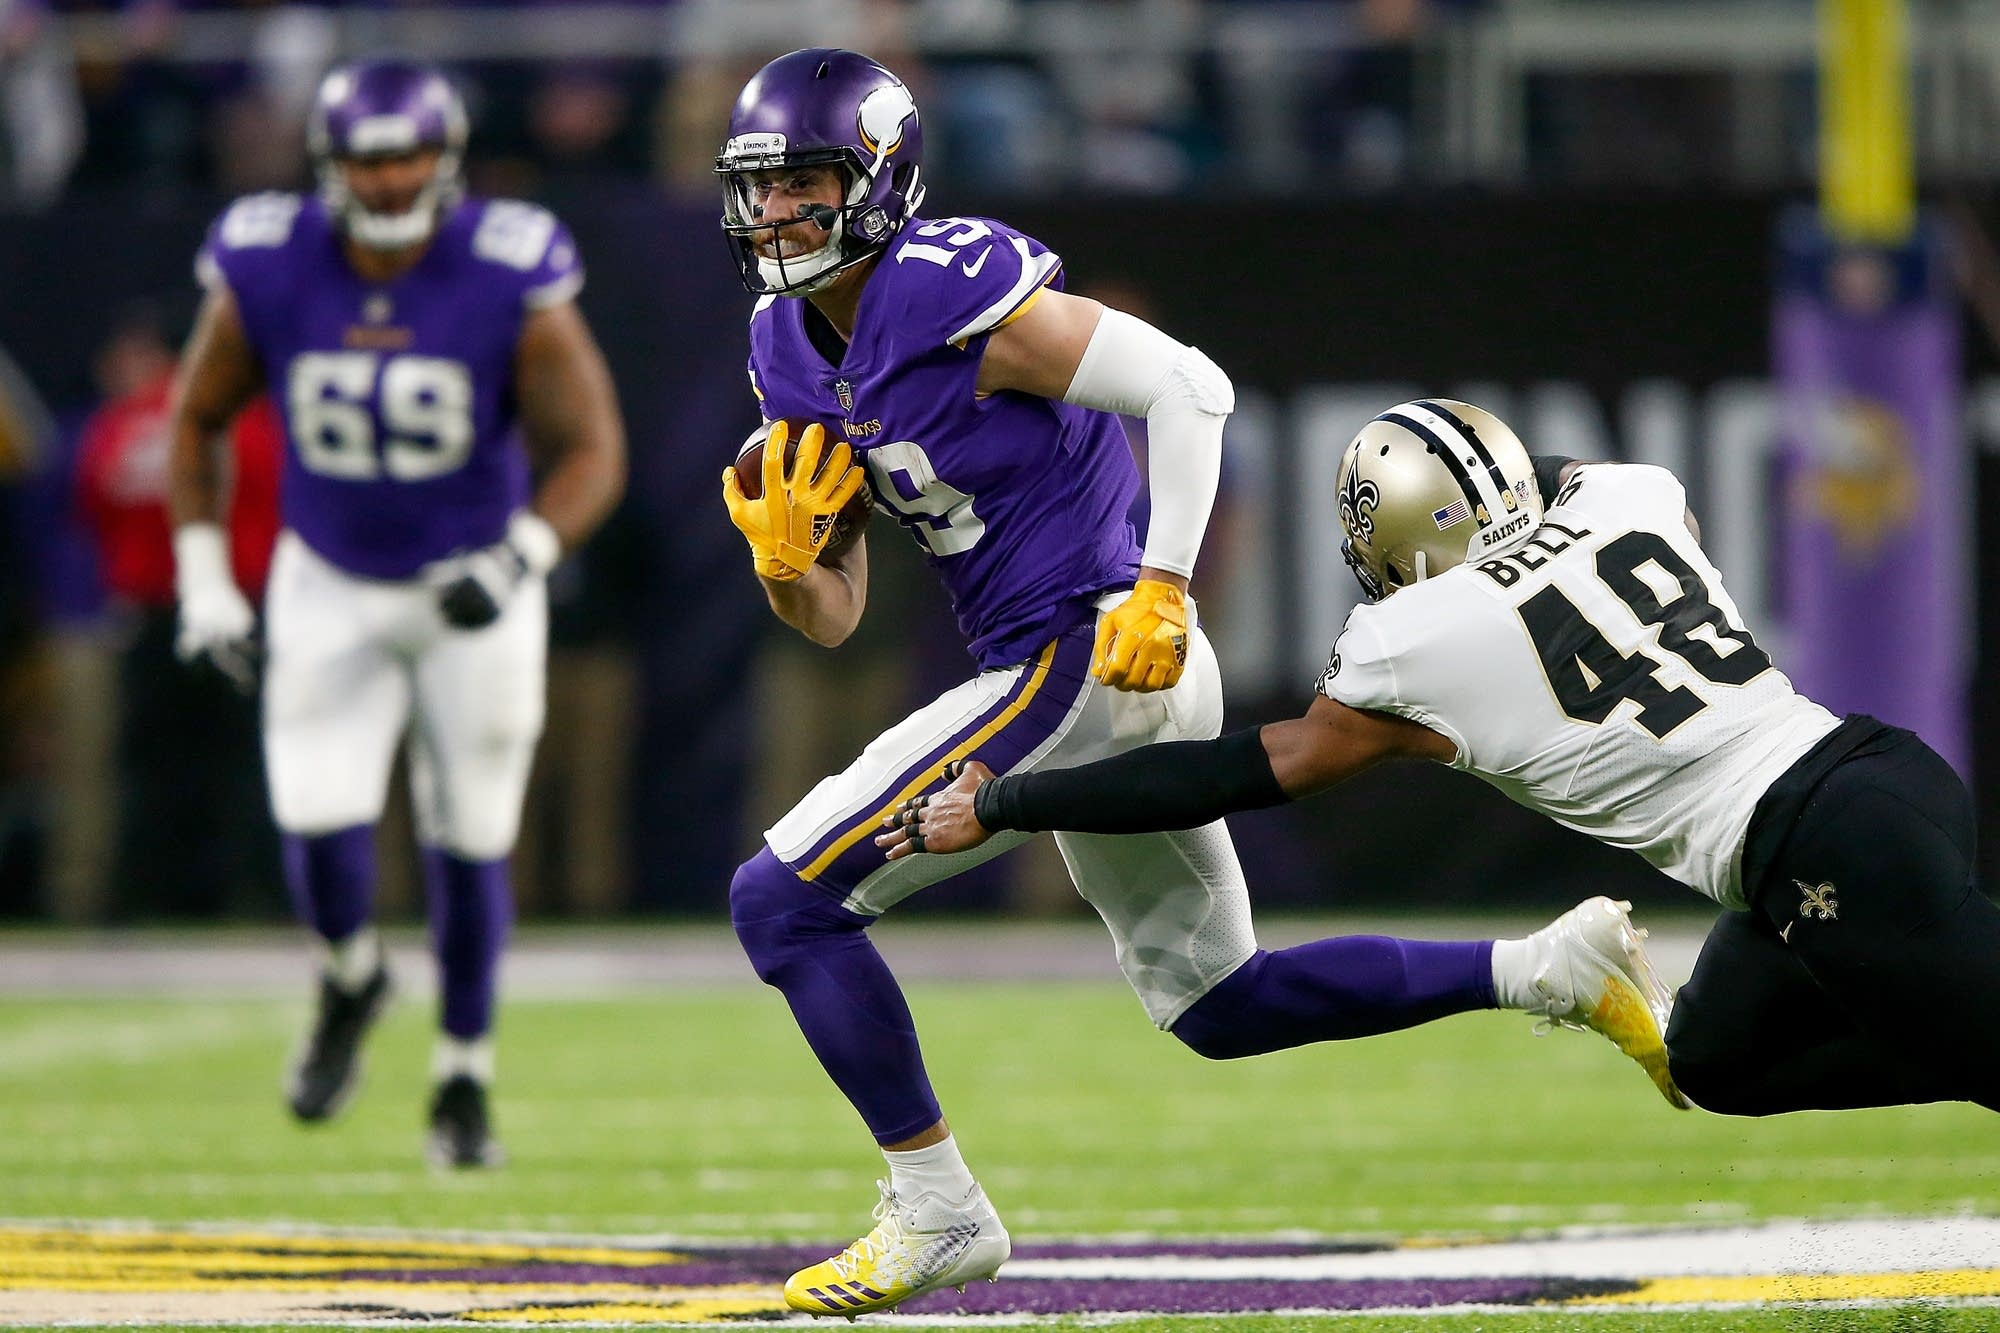 Adam Thielen of the Vikings breaks a tackle from Vonn Bell of the Saints.